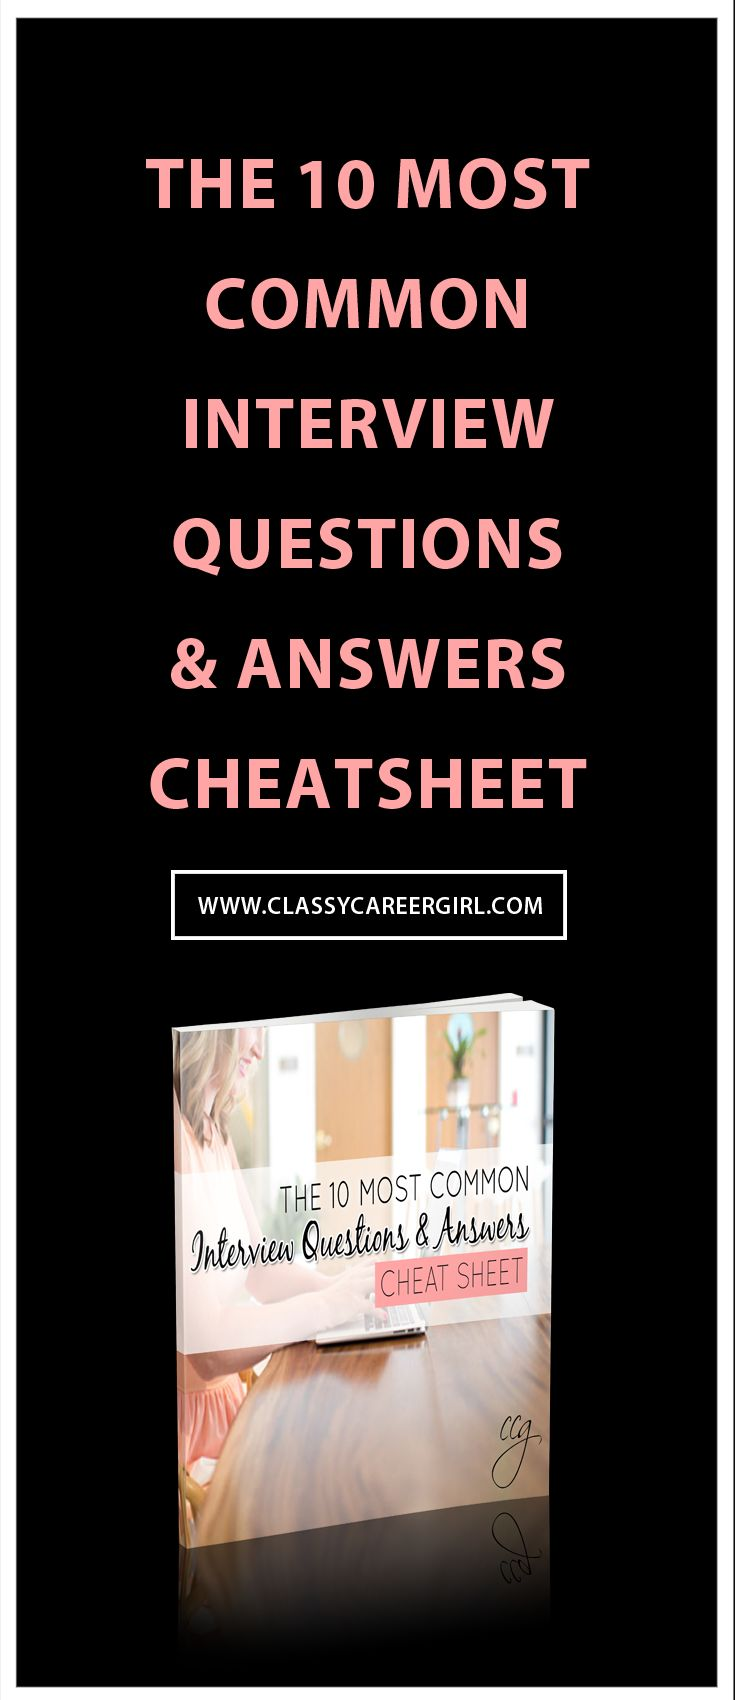 25+ best ideas about Most asked interview questions on Pinterest ...